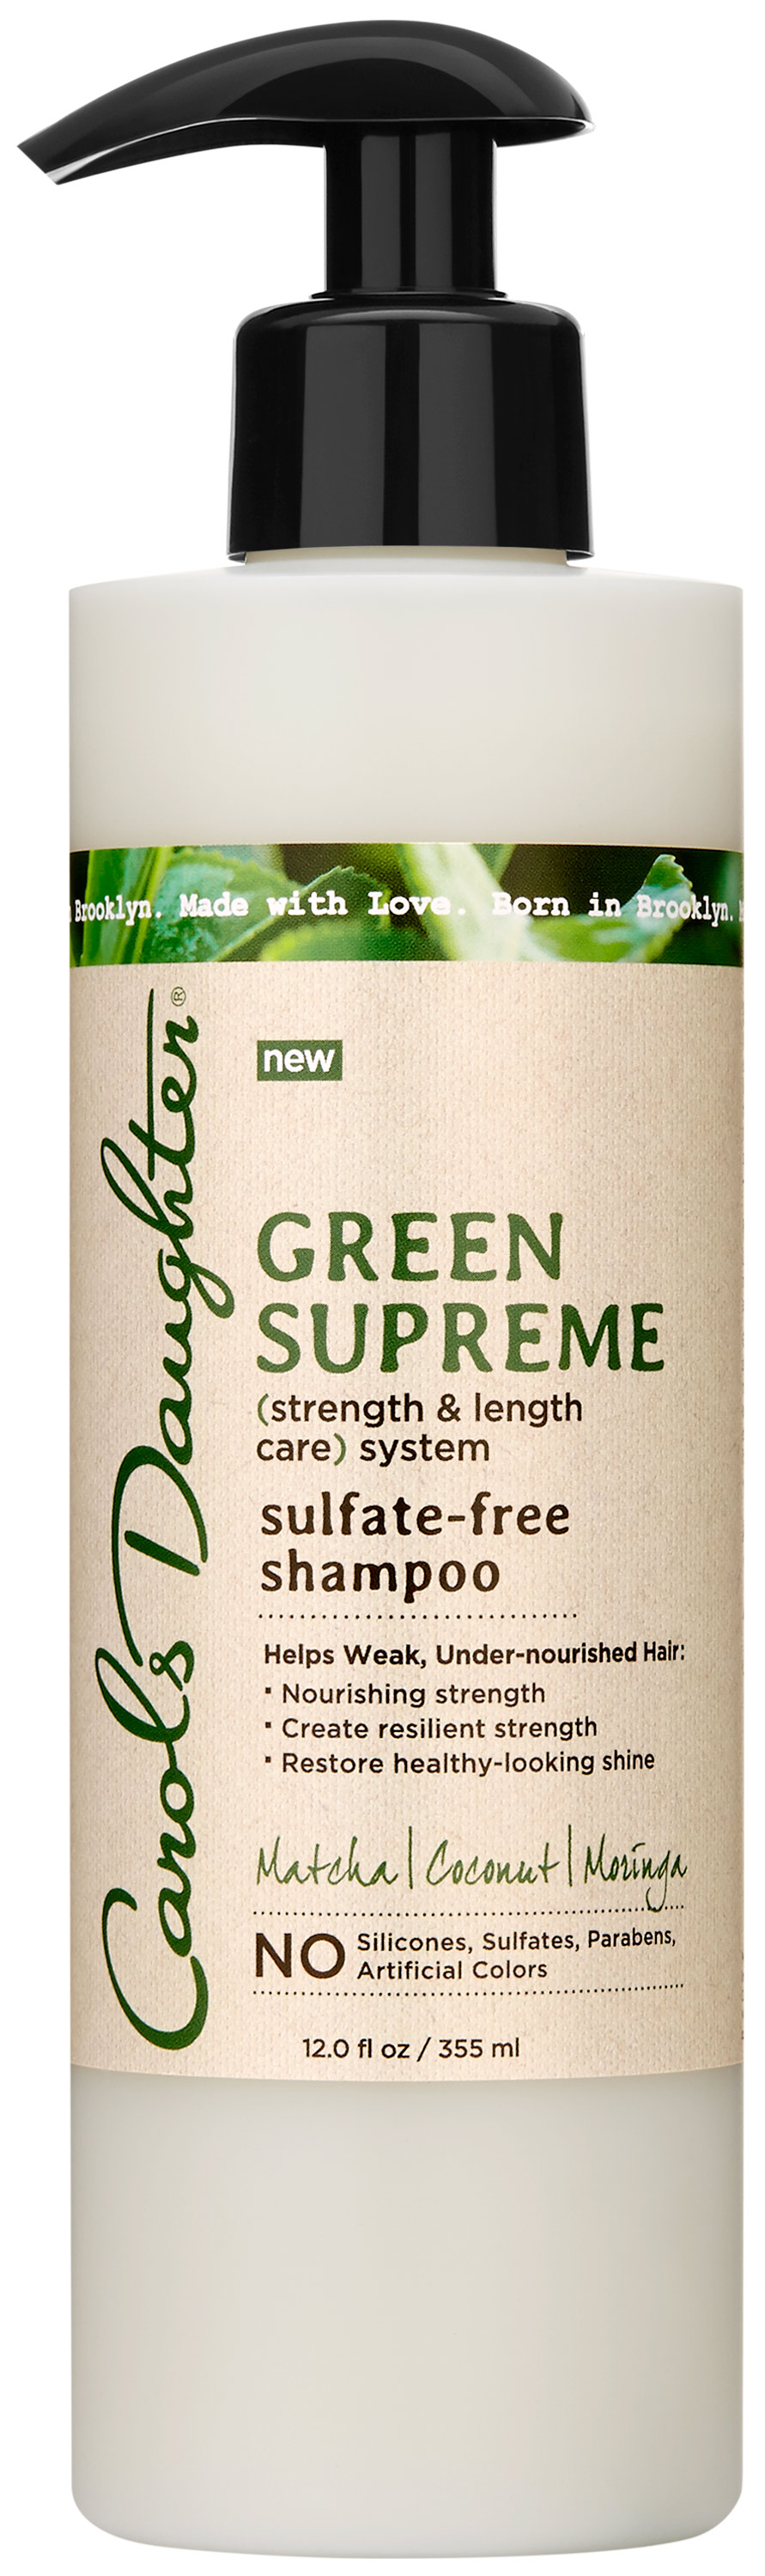 Carol's Daughter Green Supreme Sulfate-Free Shampoo